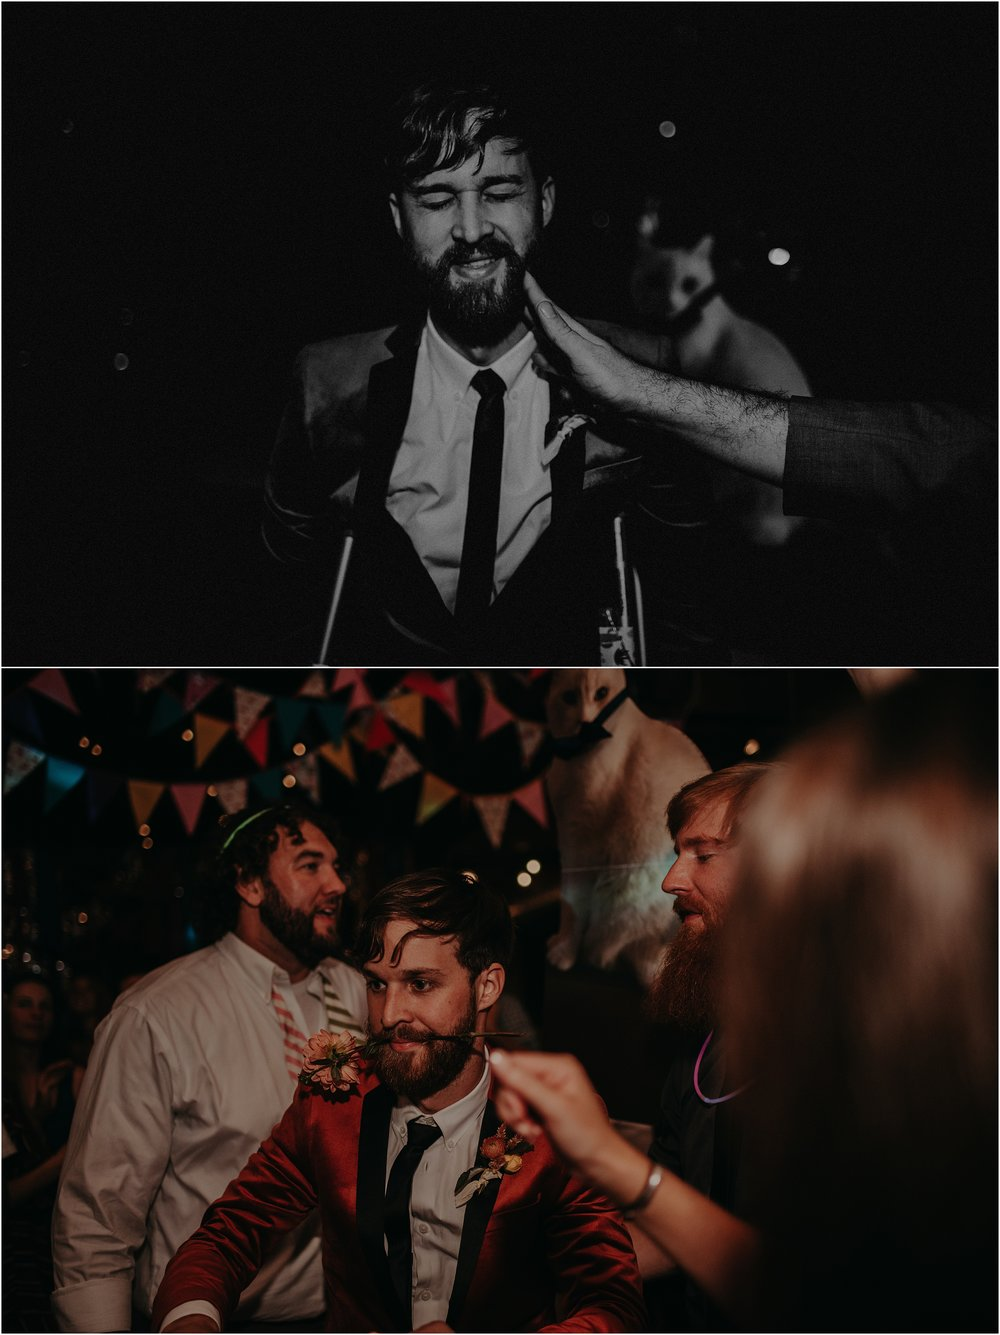 The groom and his best buds having too much fun